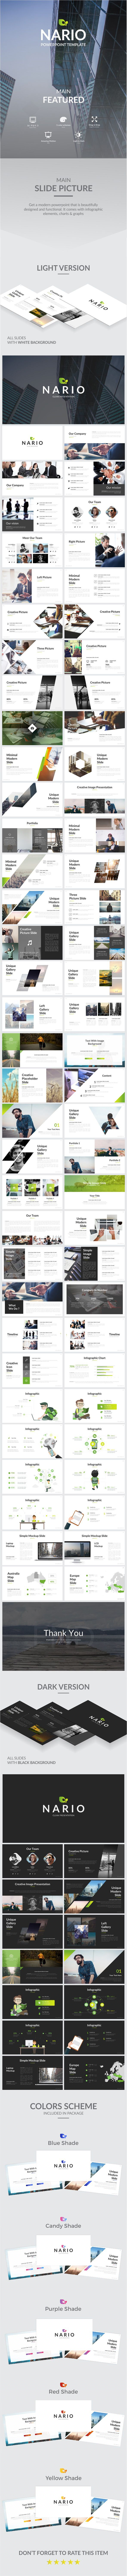 Nario Clean PowerPoint Presentation Template